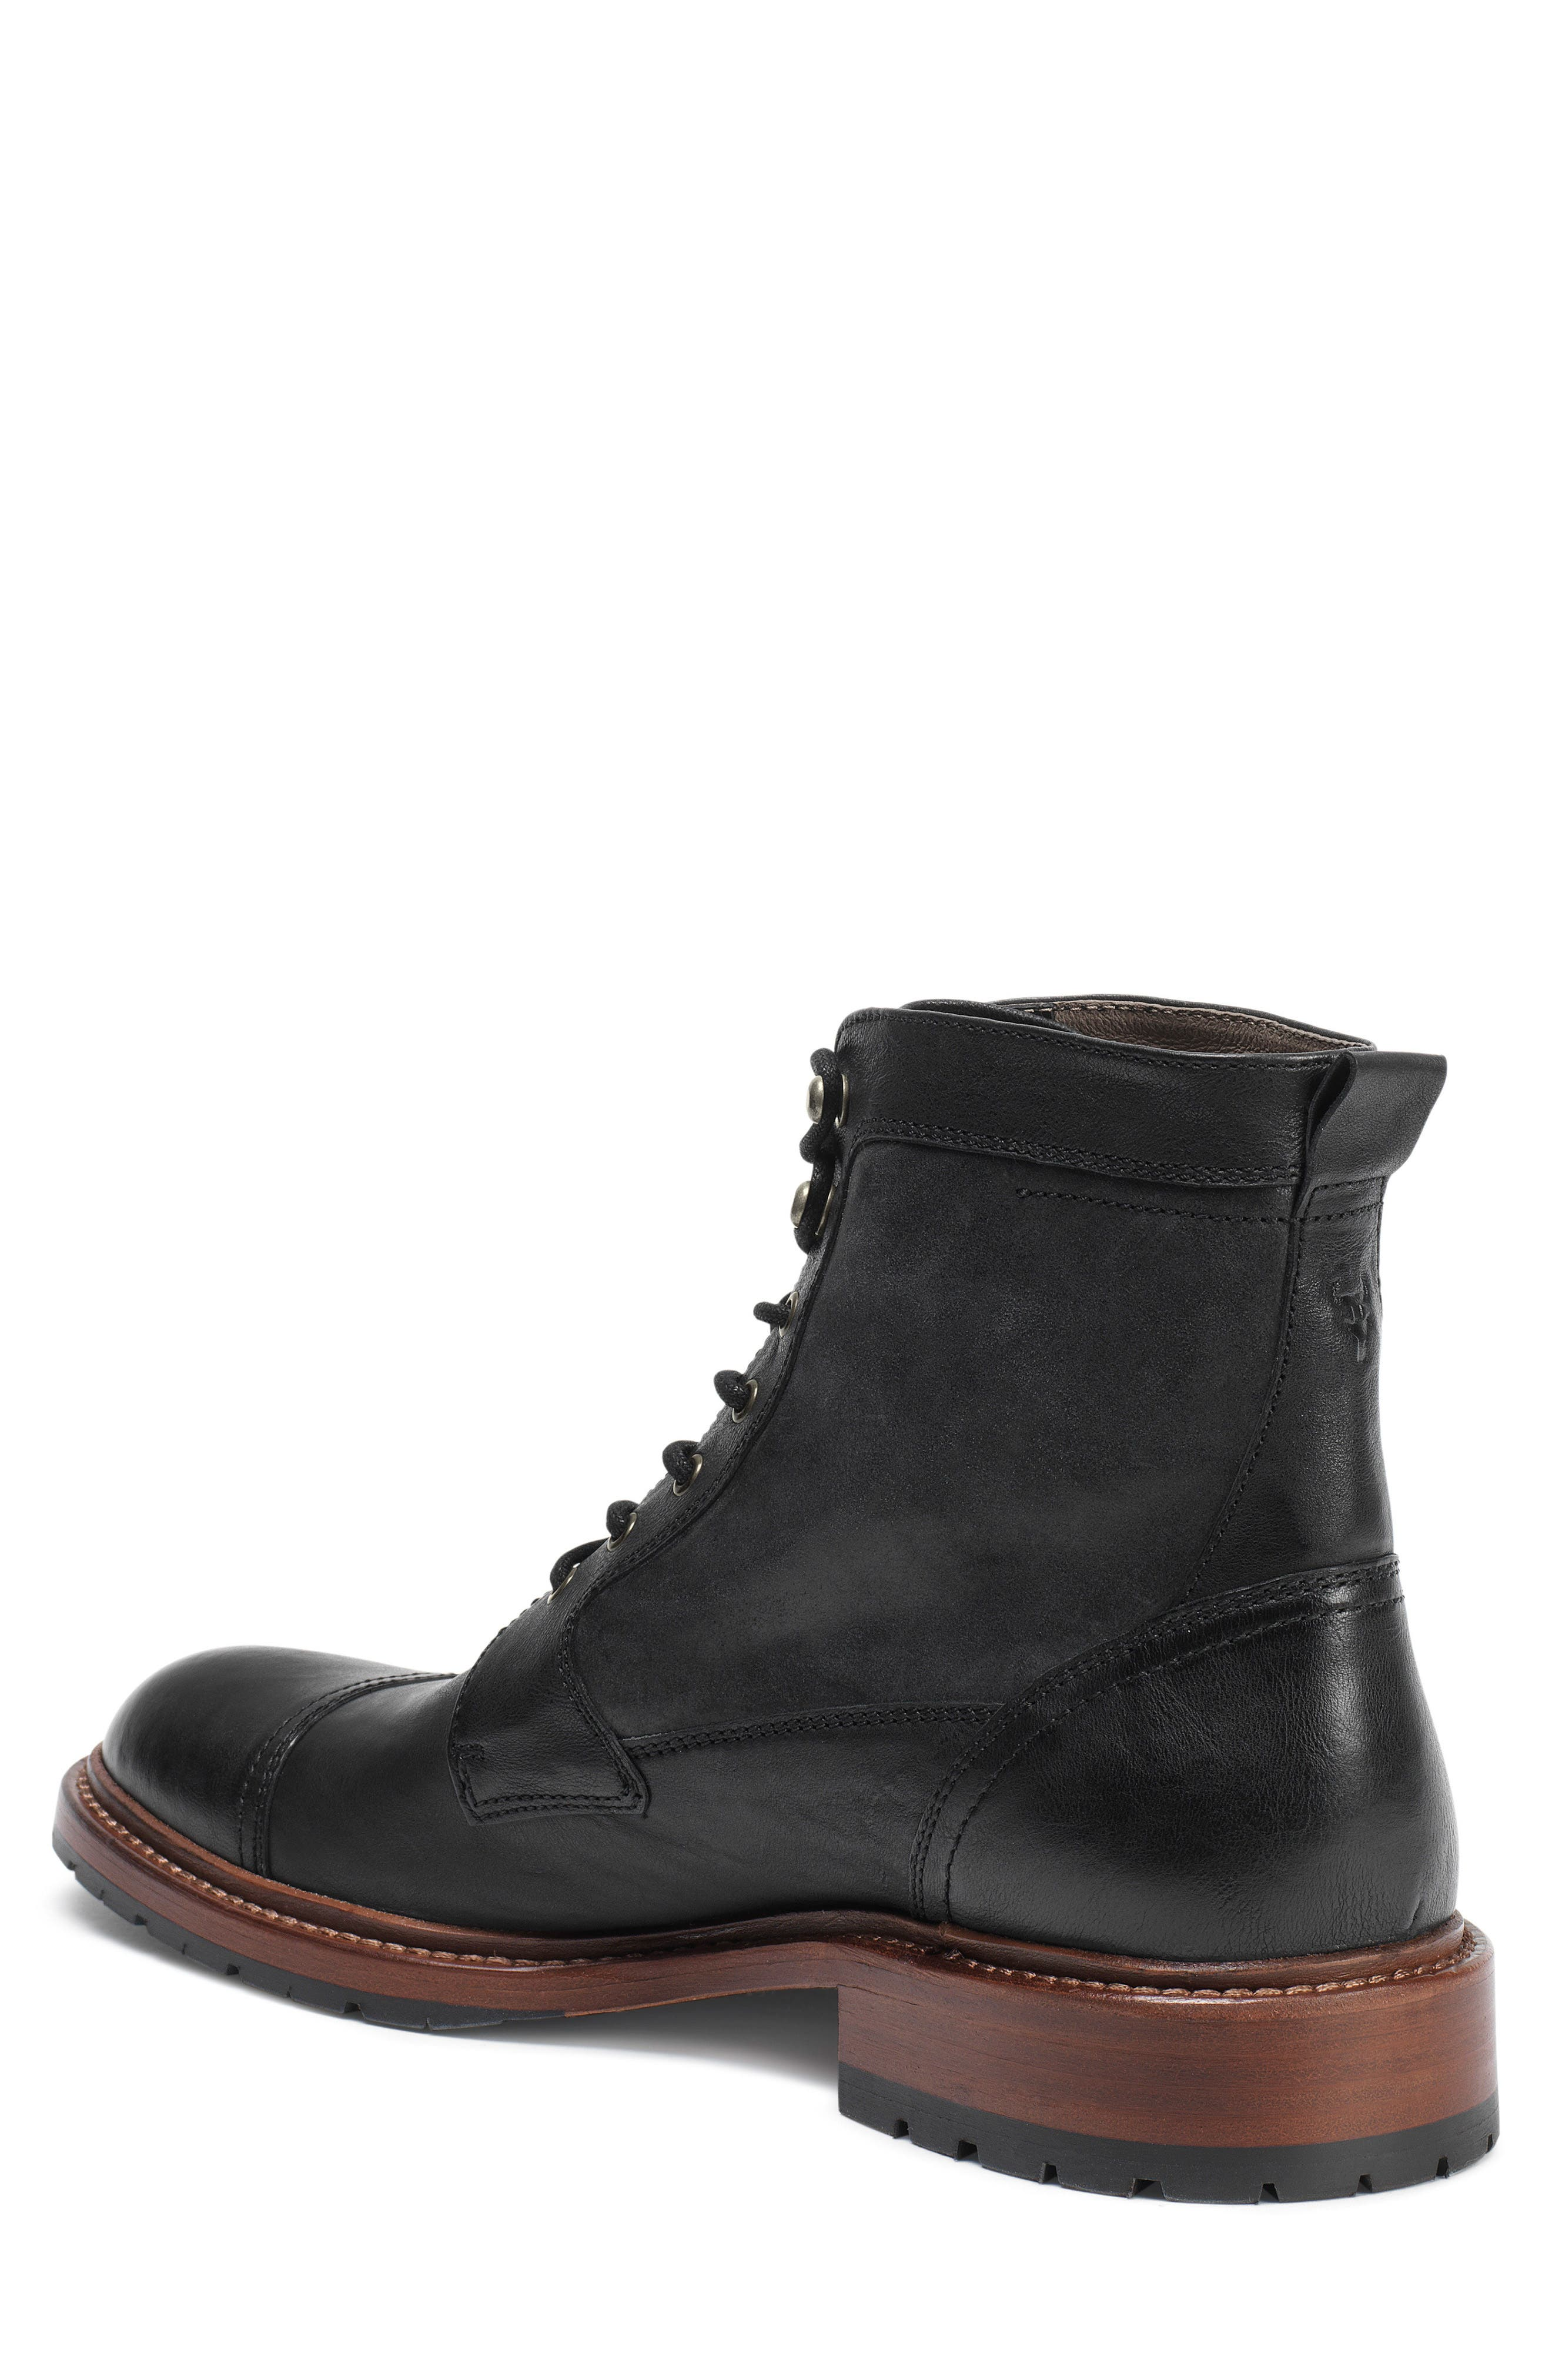 'Lowell' Cap Toe Boot,                             Alternate thumbnail 2, color,                             BLACK WASHED LEATHER